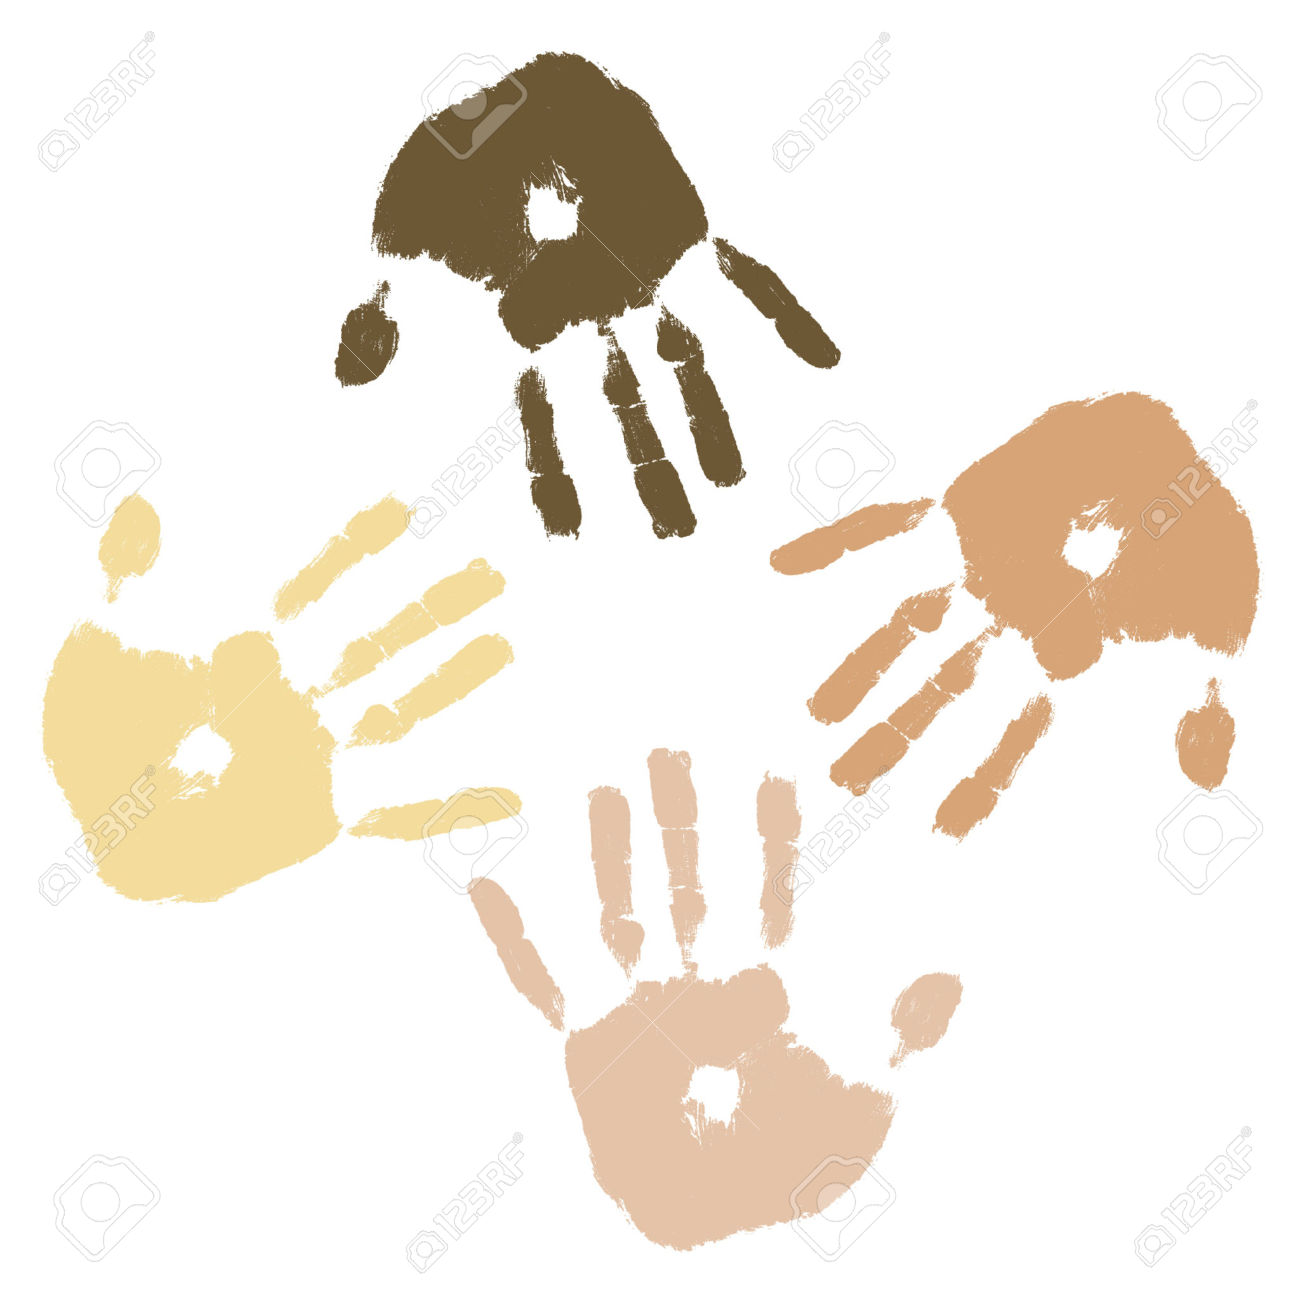 Different color skin tones clipart.